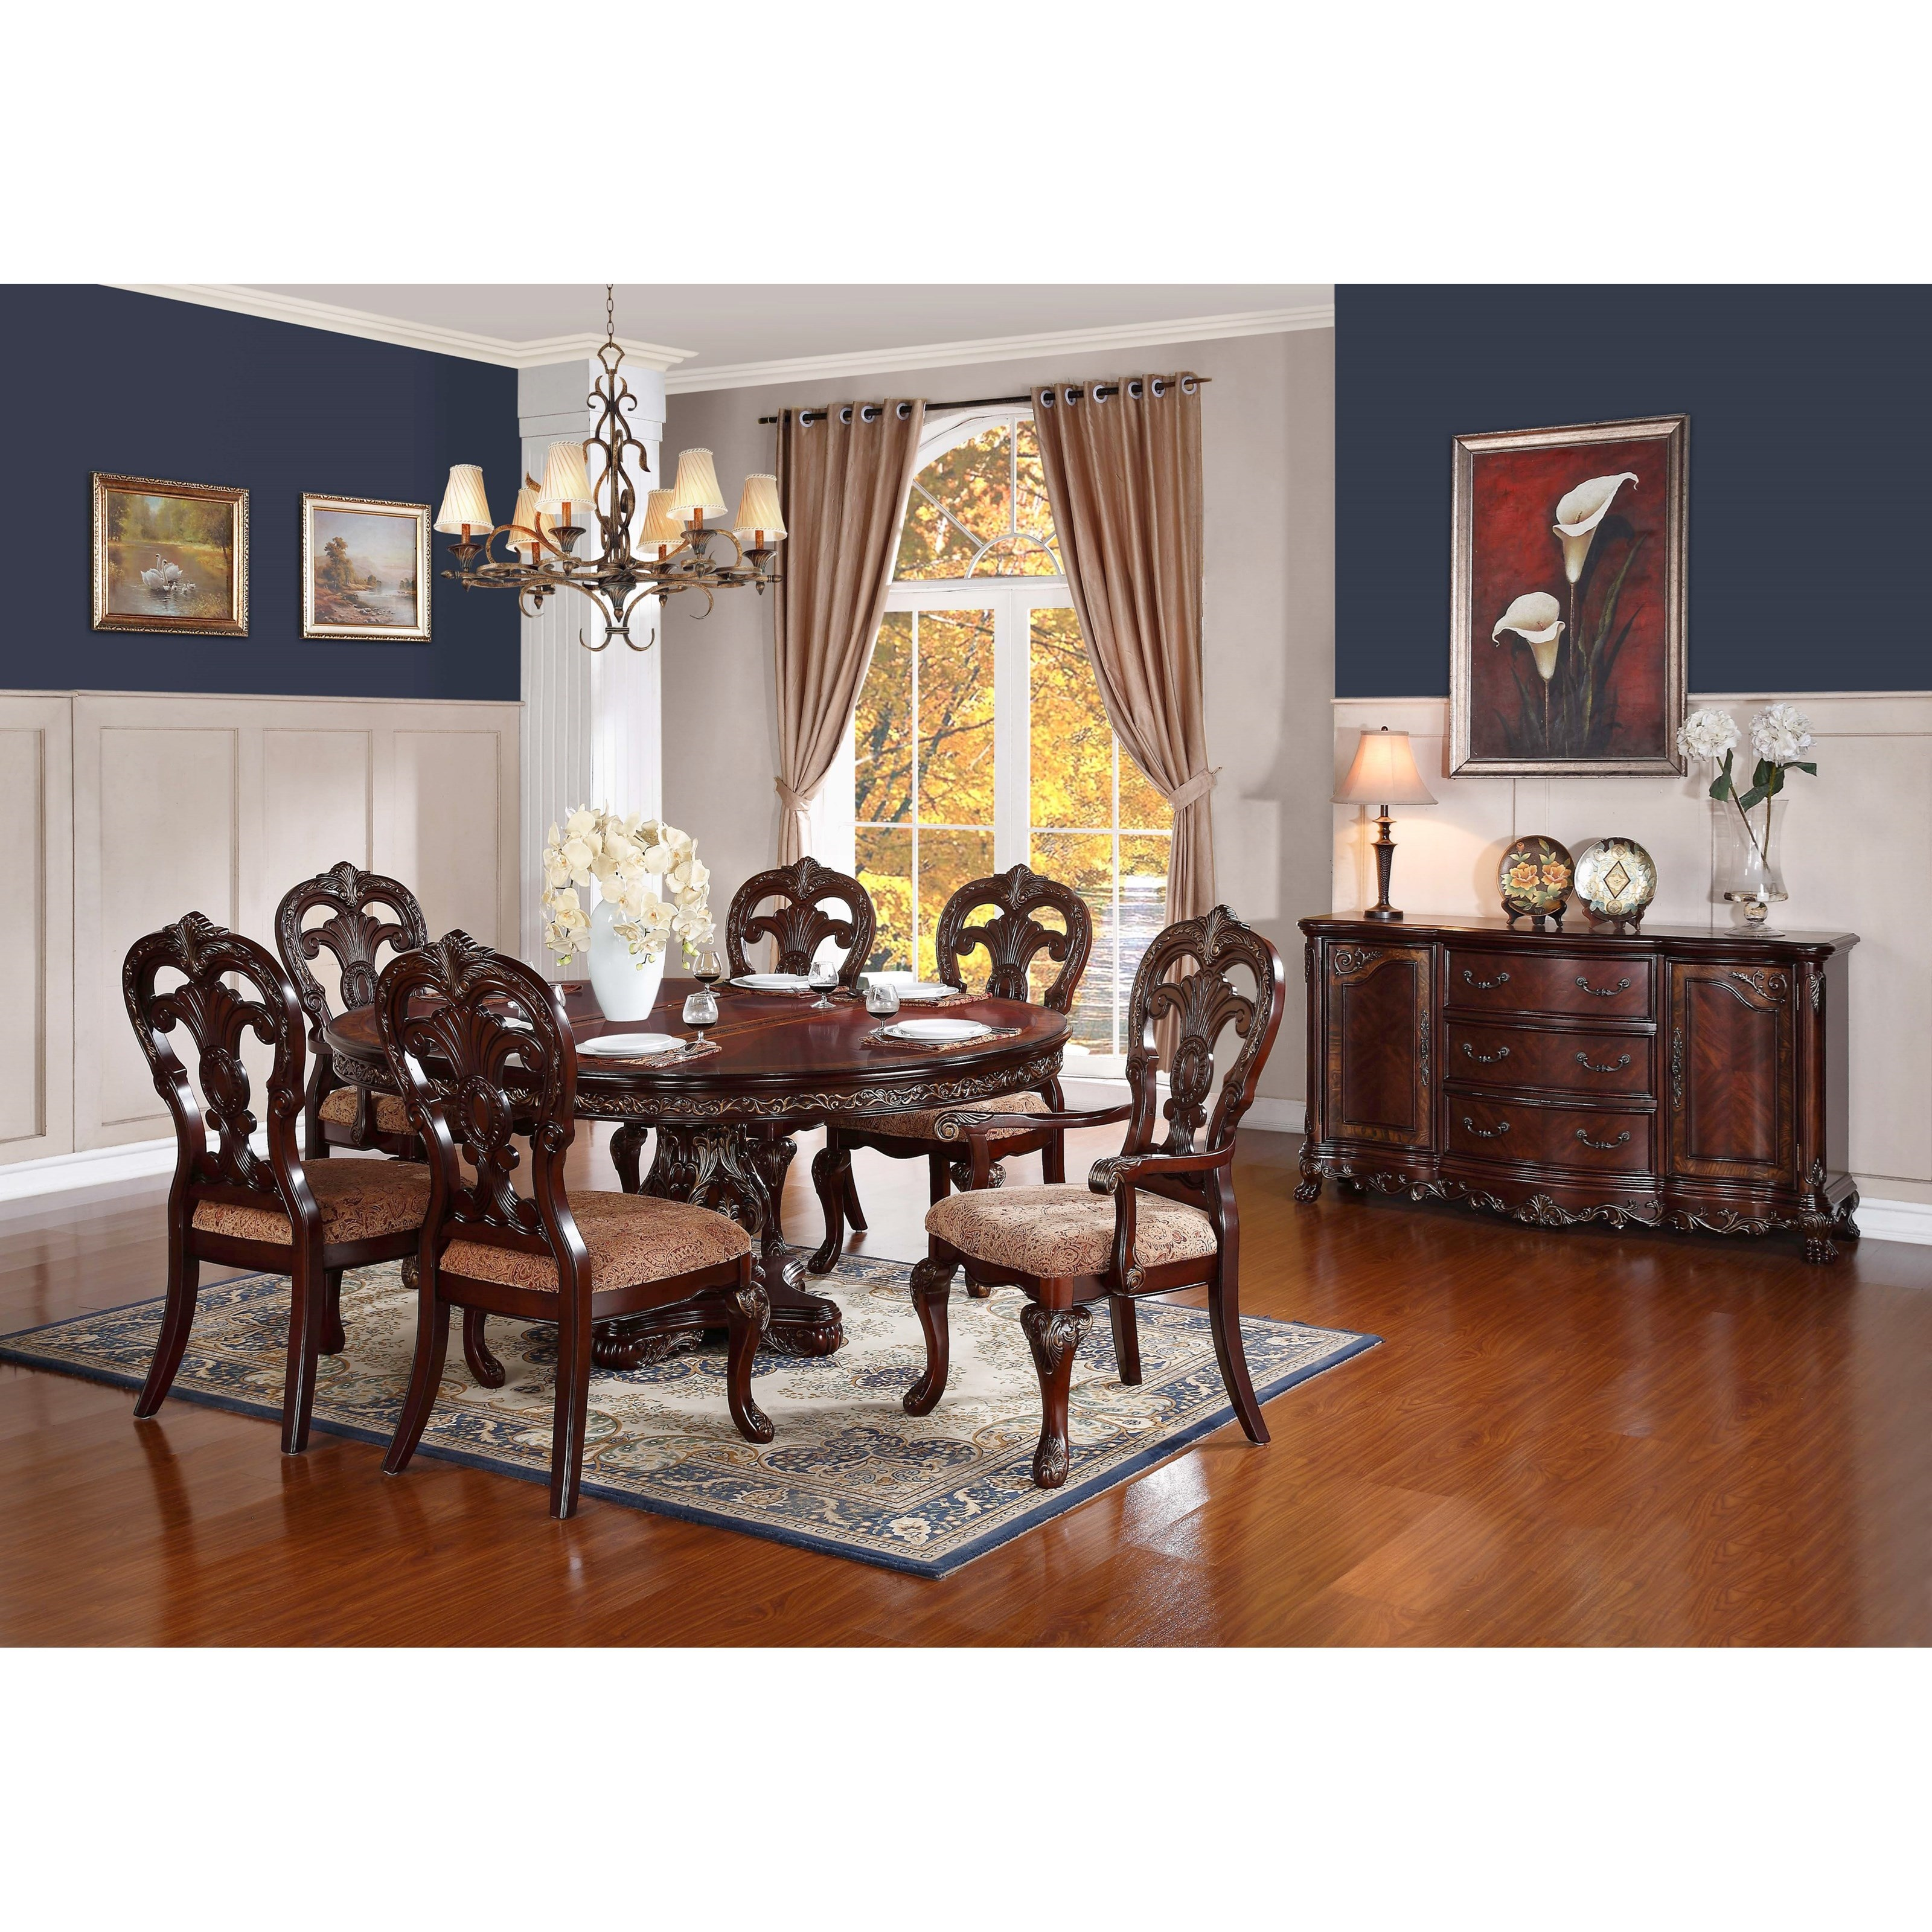 Homelegance Deryn Park Formal Dining Room Group